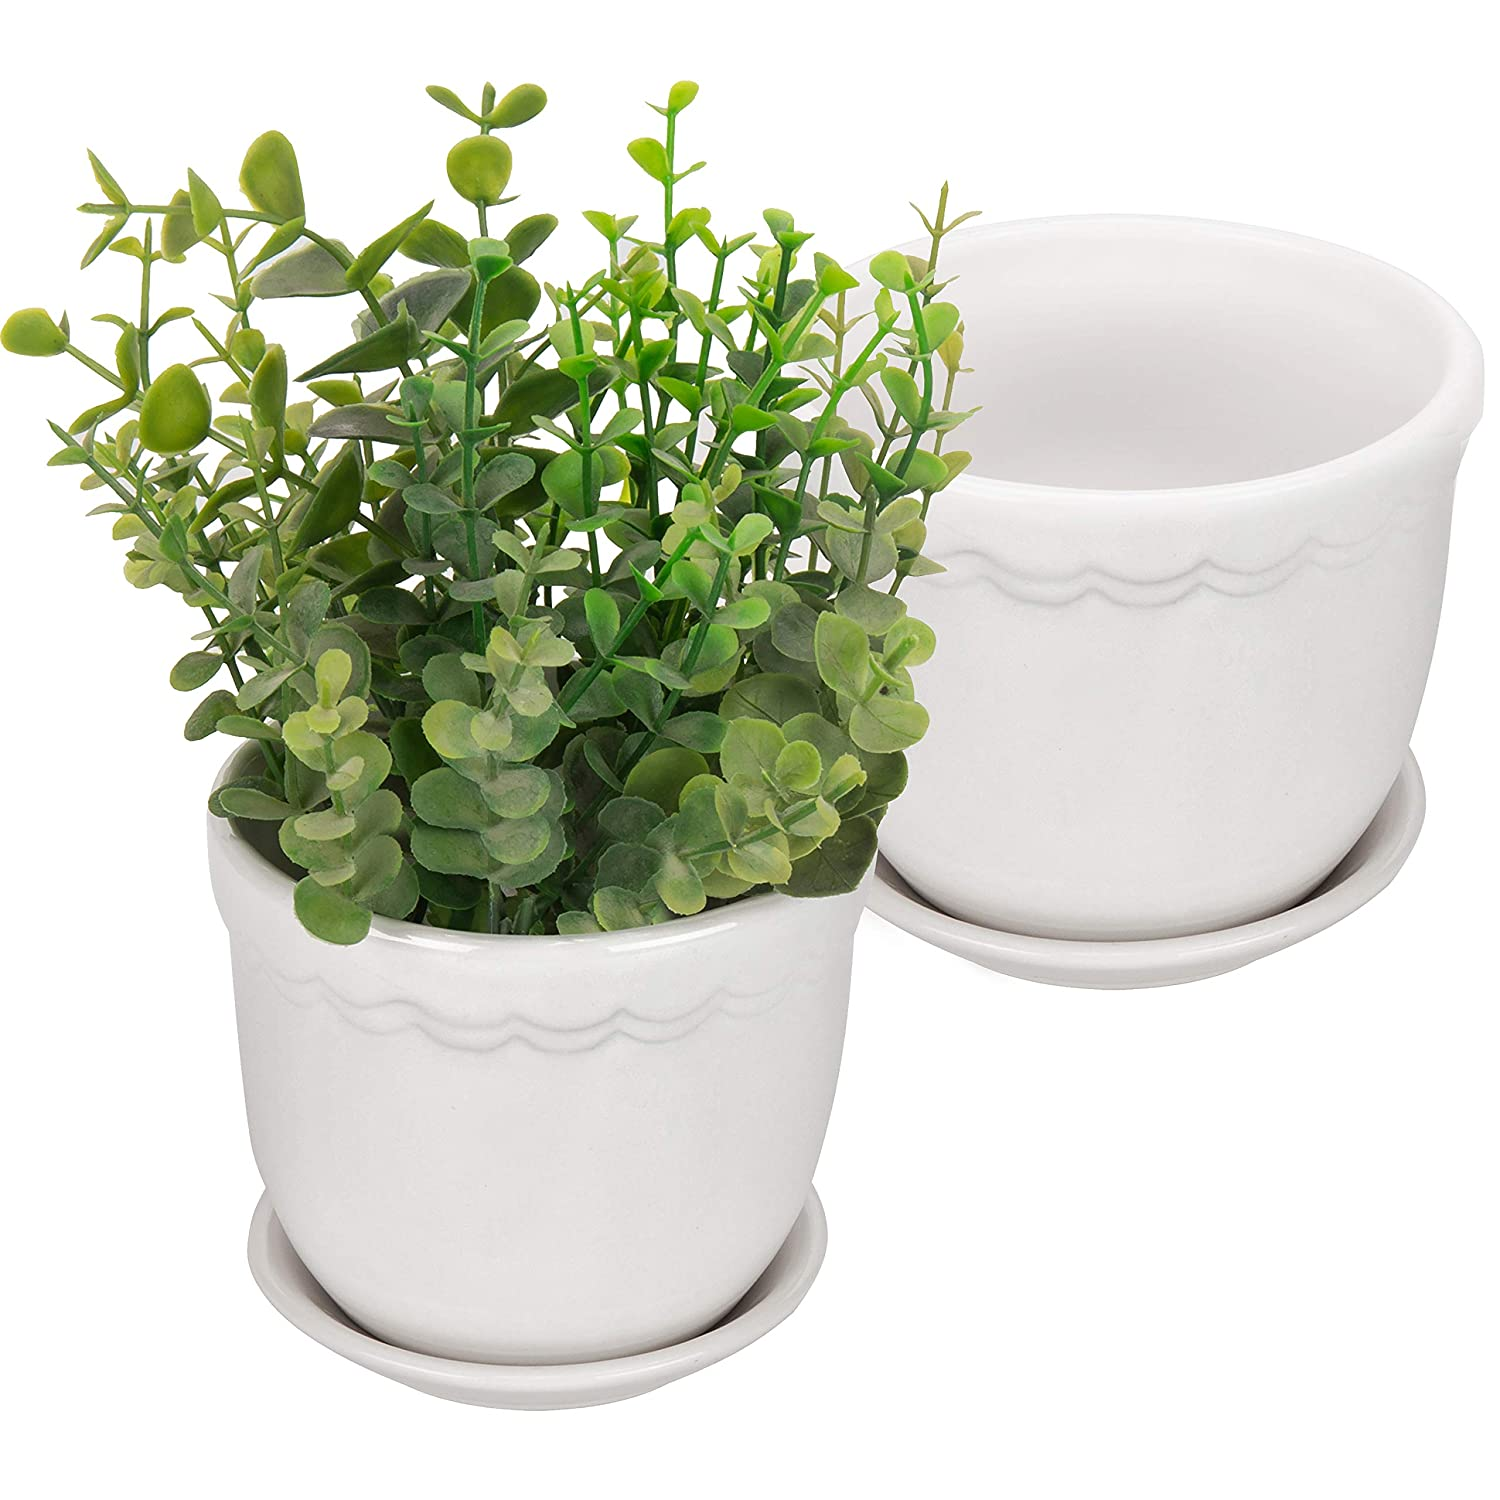 MyGift 4-Inch White Scallop Design Ceramic Planters with Removable Saucers, Set of 2